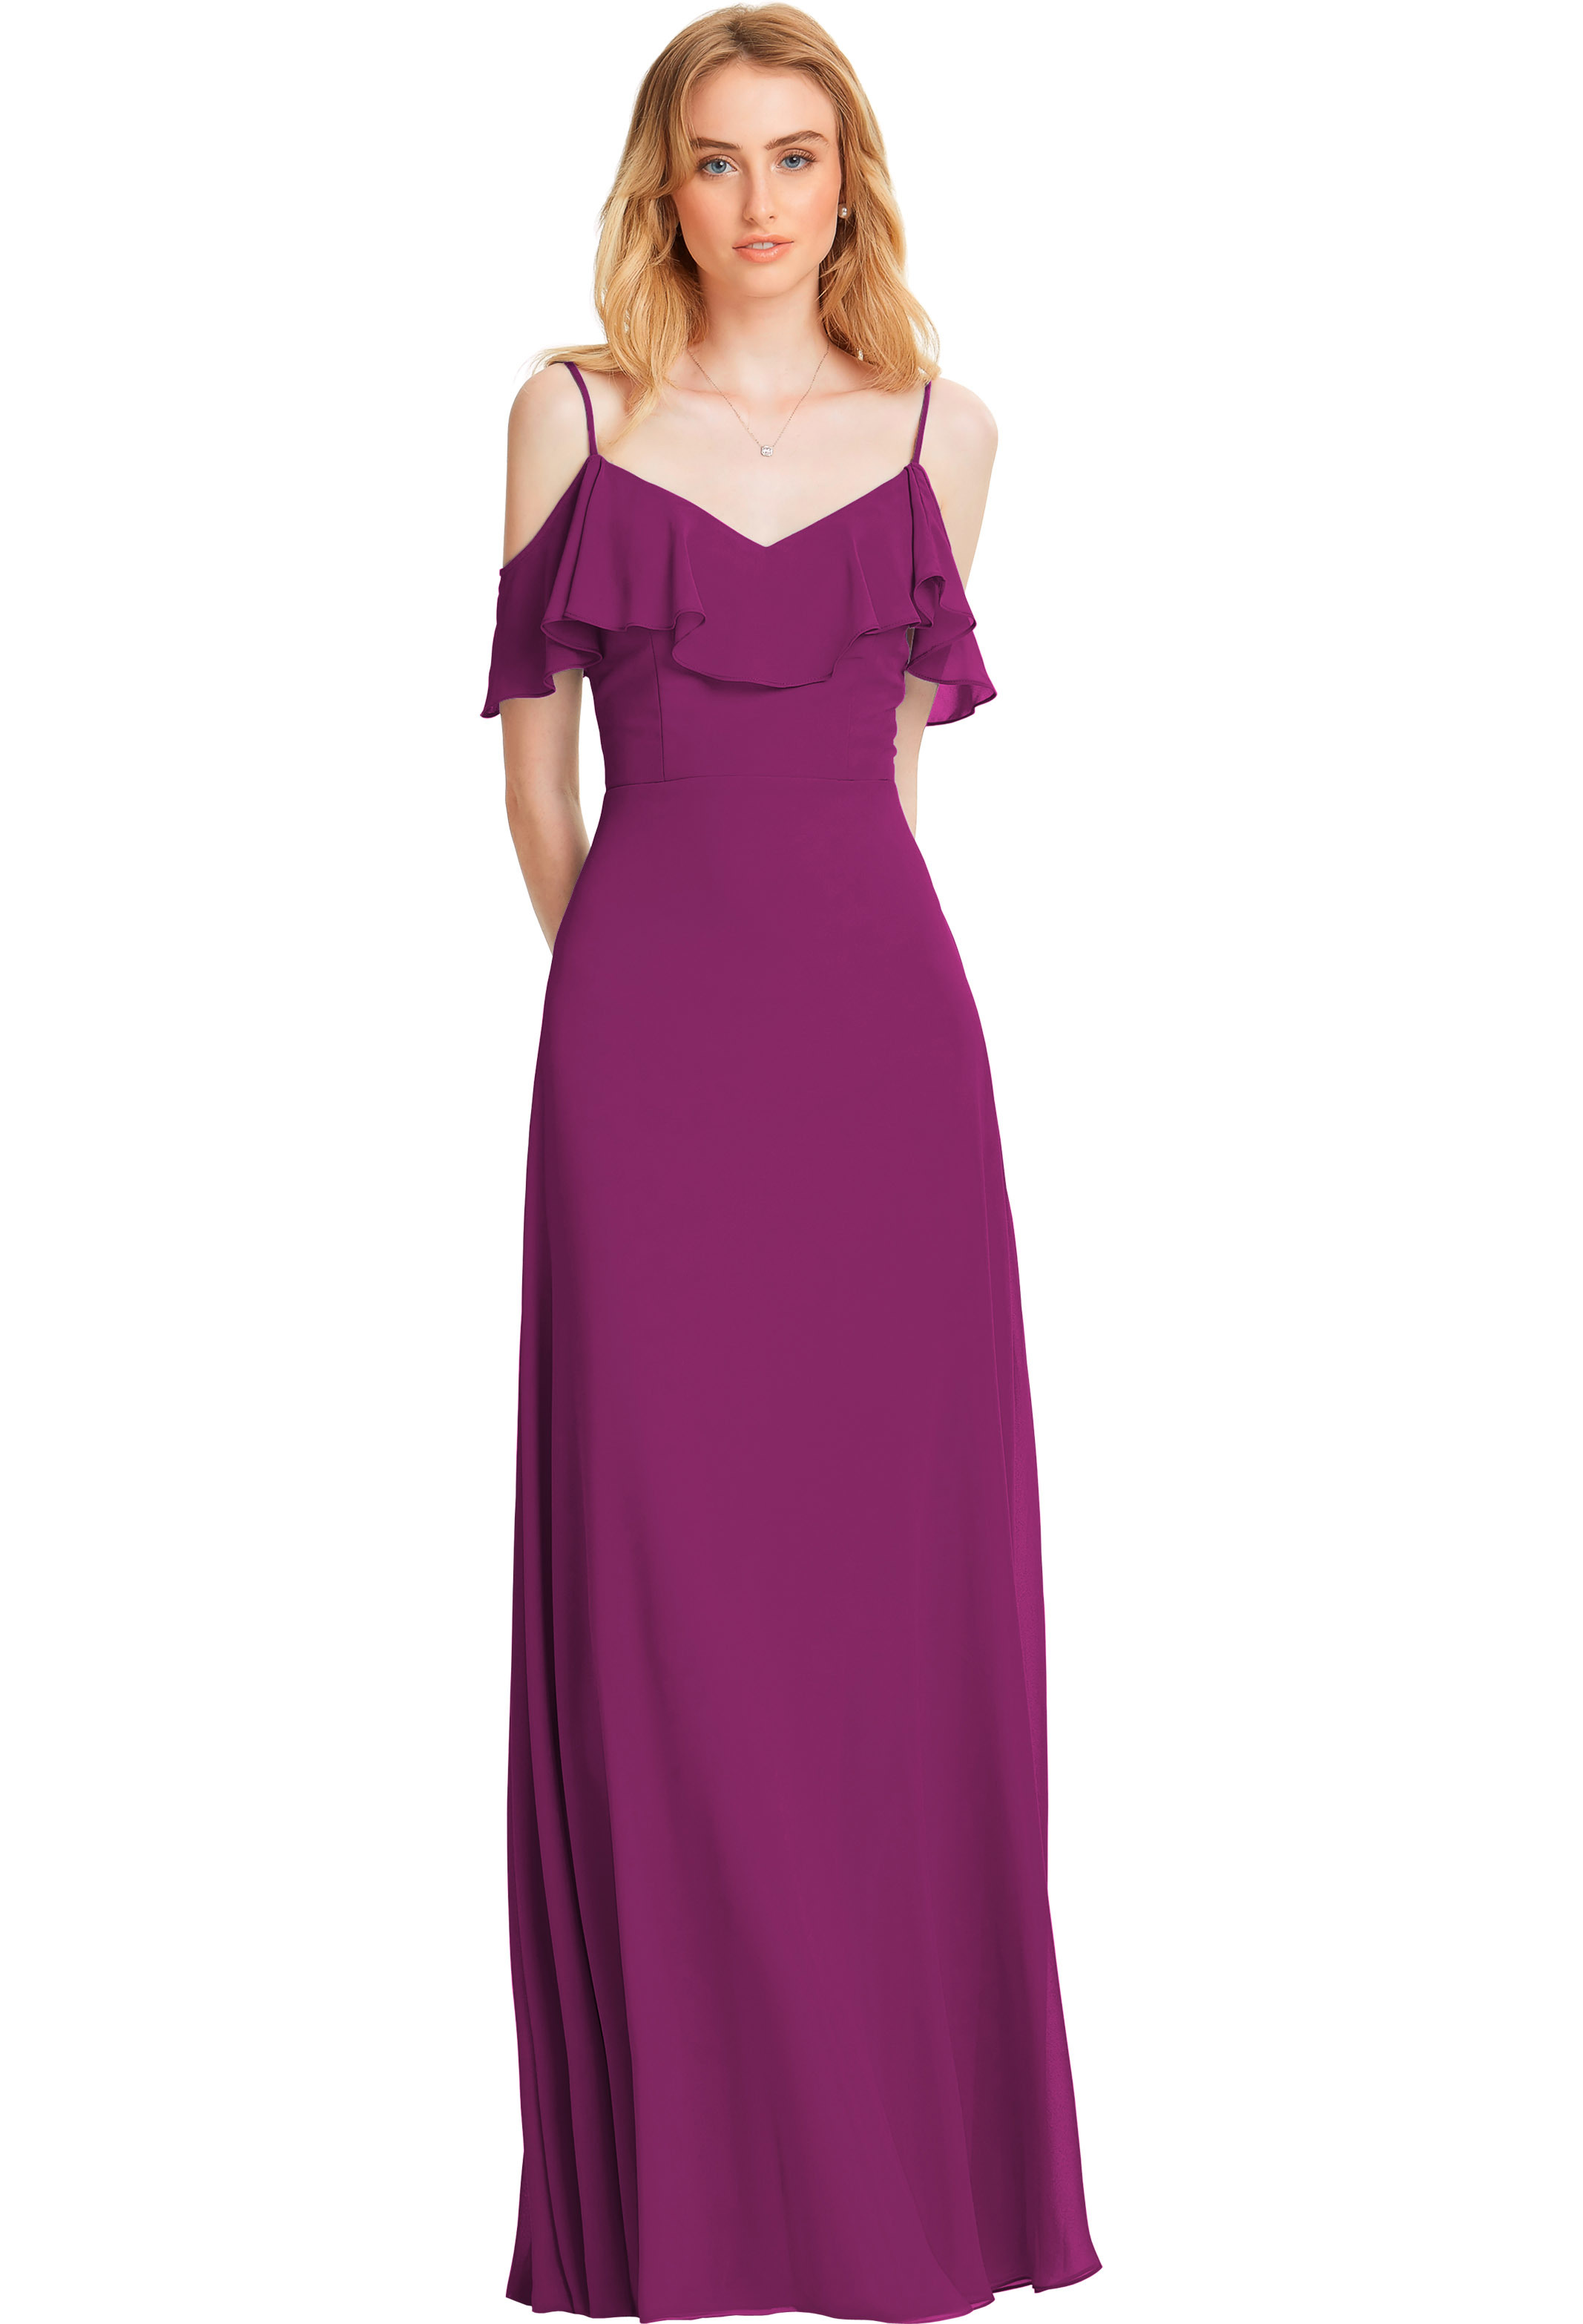 Bill Levkoff SANGRIA Chiffon V-back A-line gown, $178.00 Front